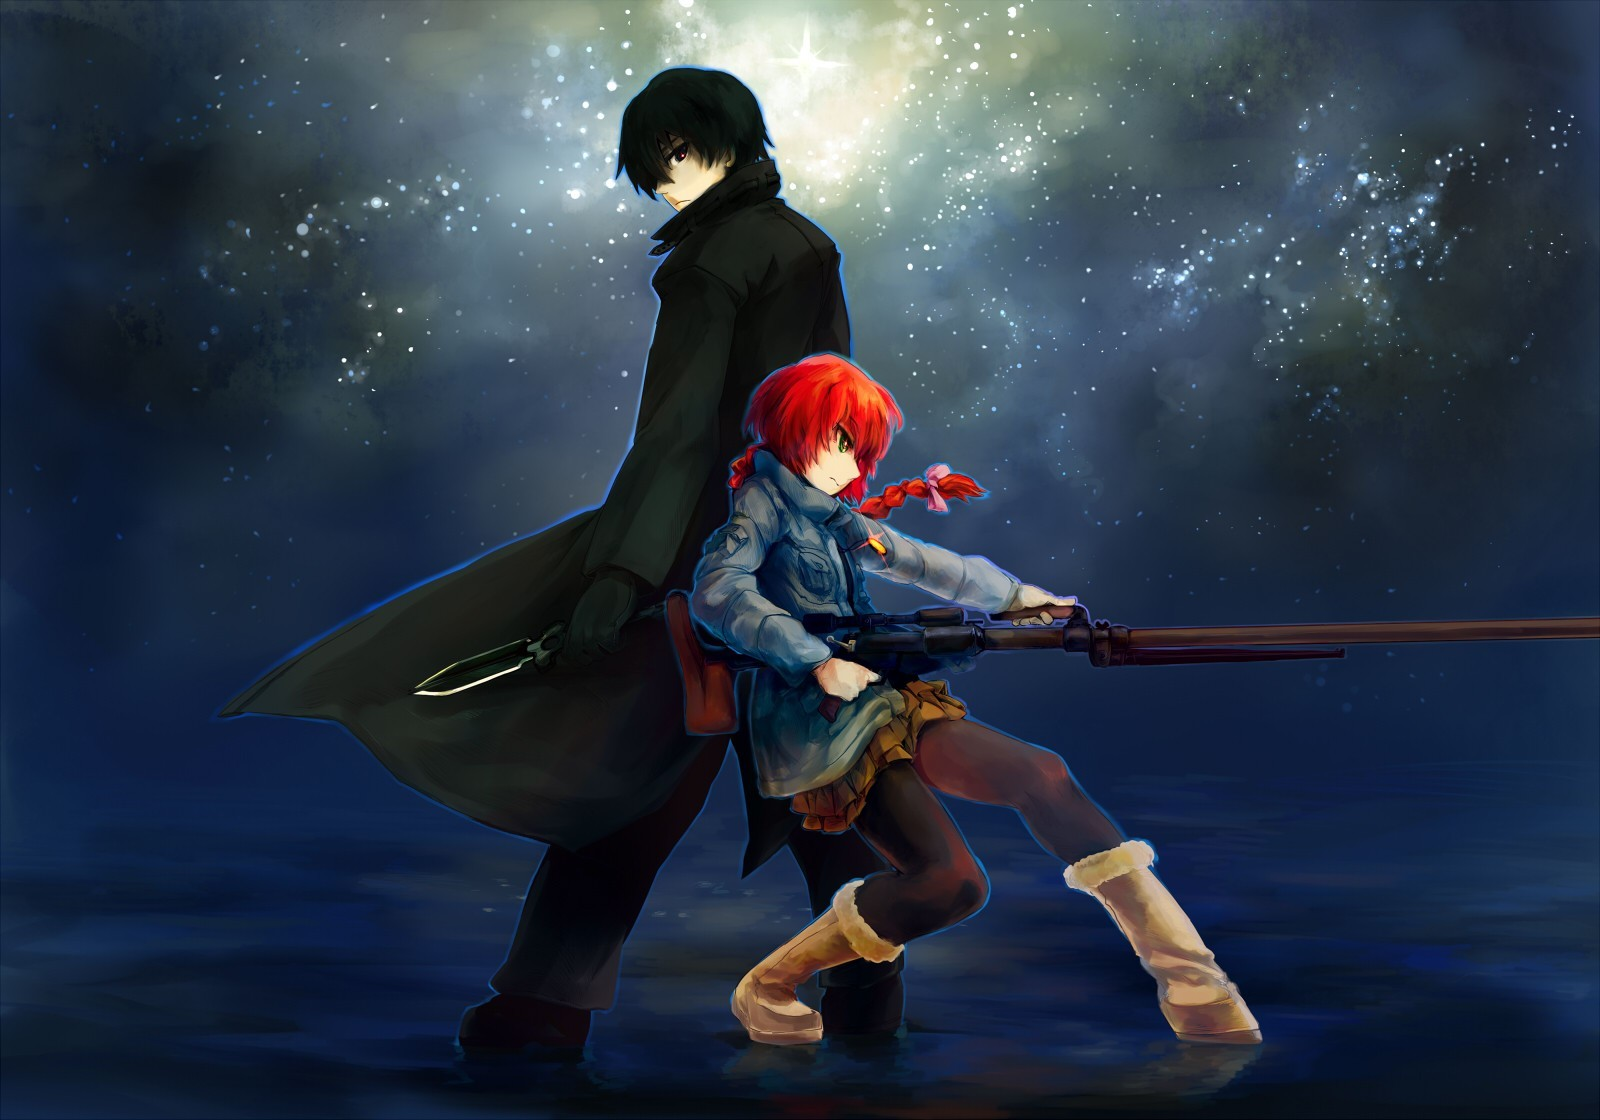 darker than black hei Pavlichenko Suou